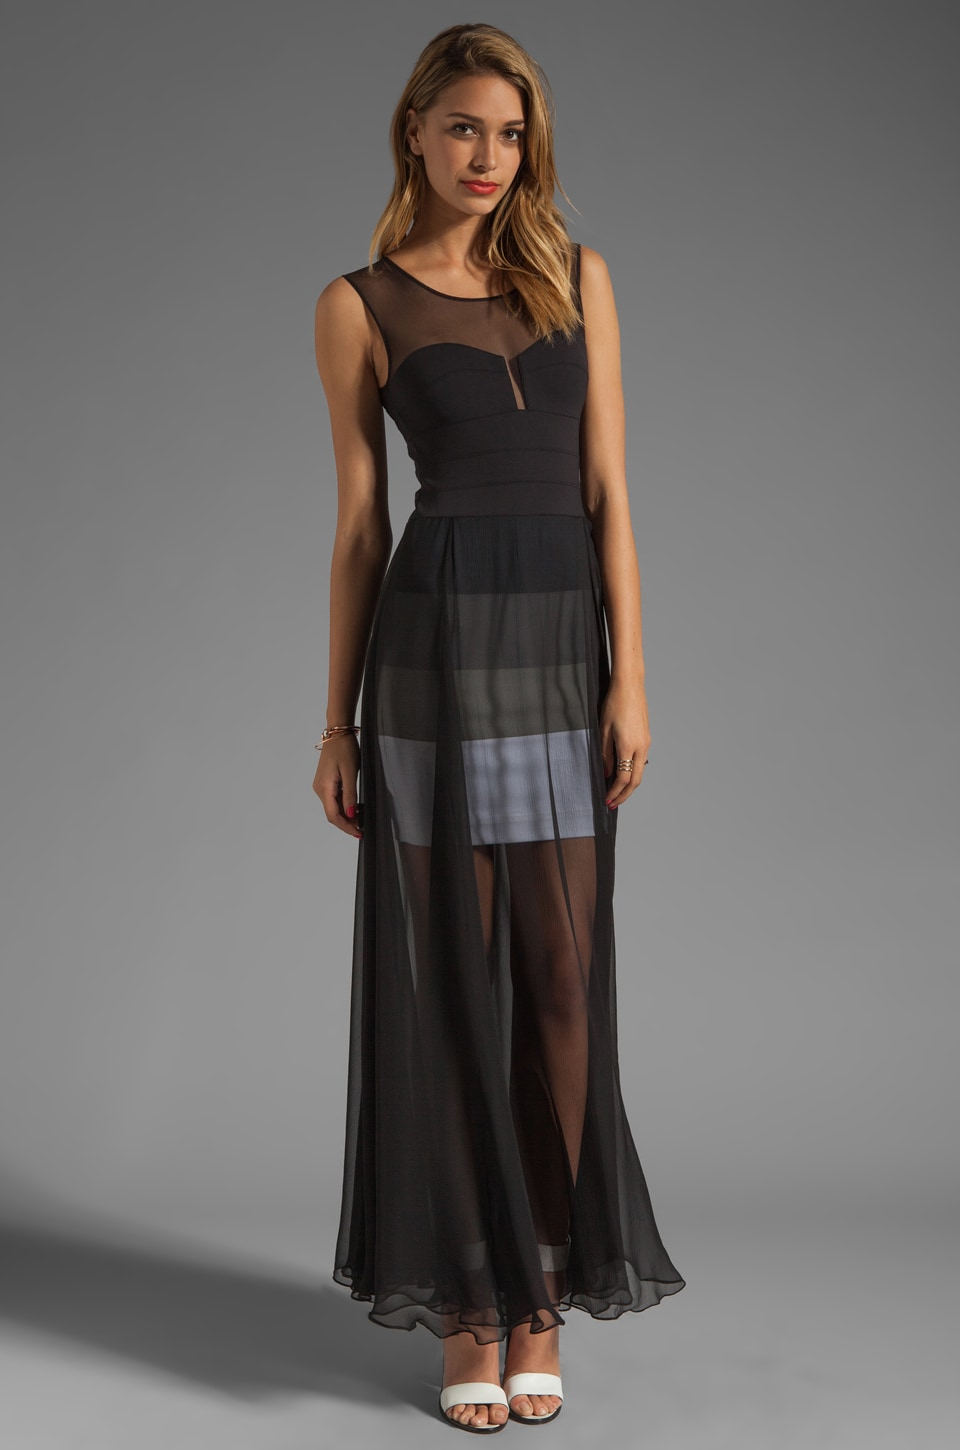 BCBGMAXAZRIA Sheer Maxi Tank Dress in Black Combo